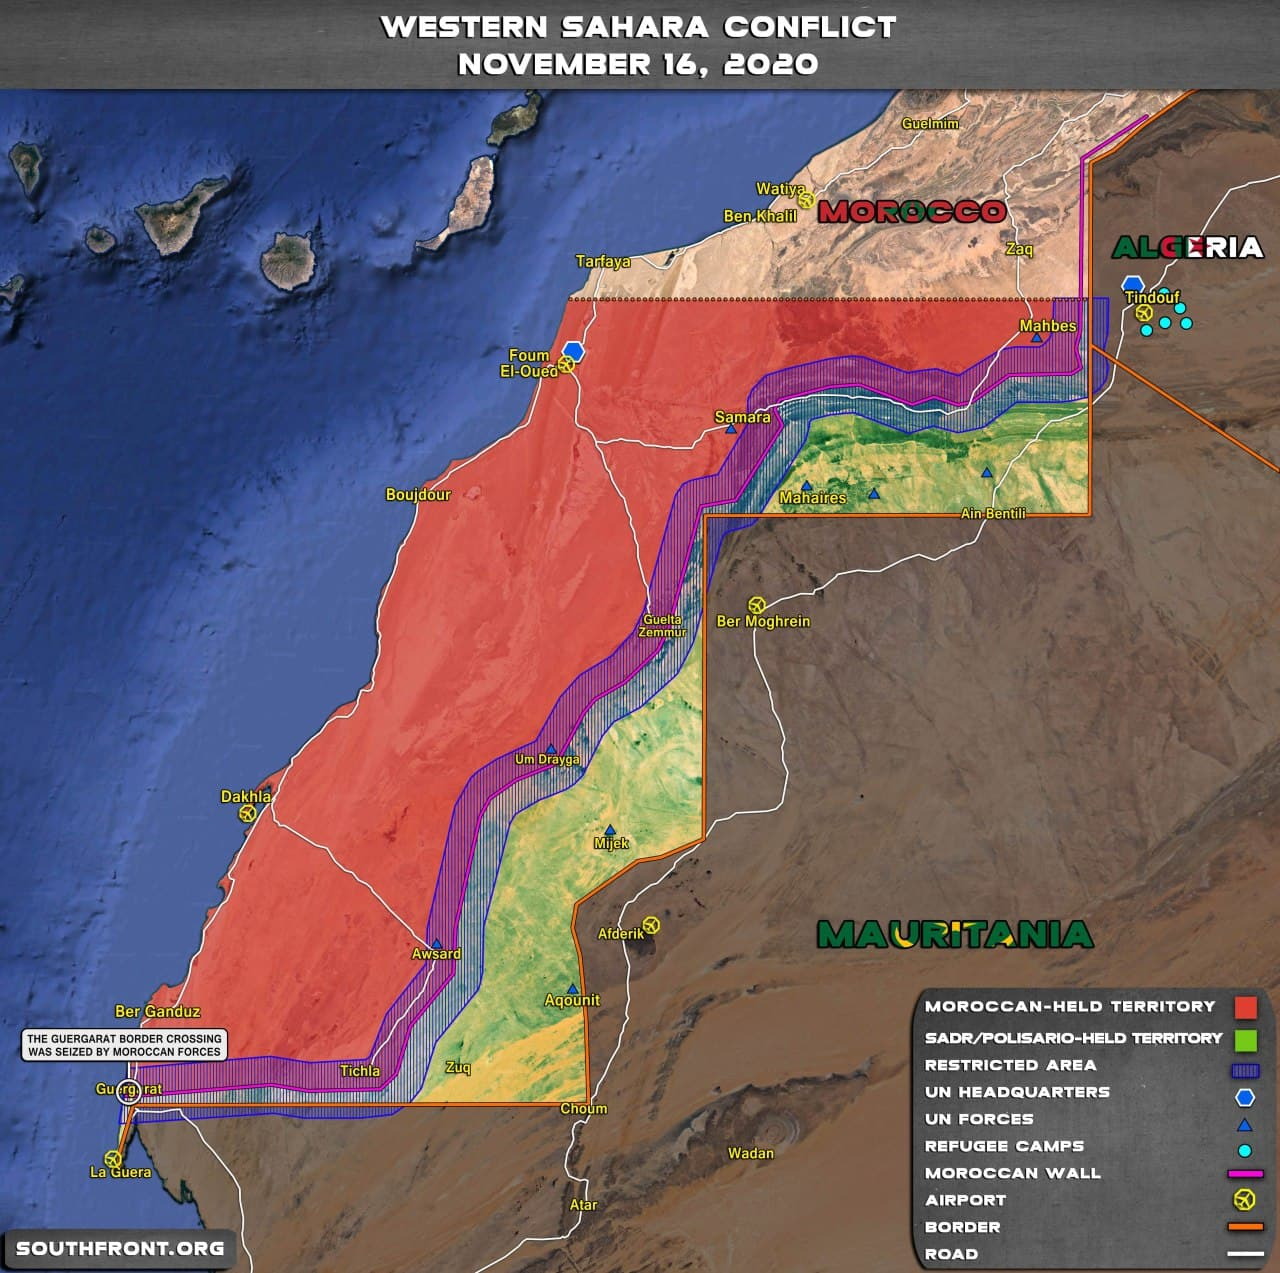 Clashes In Western Sahara Continue, As Polisario Front Says There's No Hope For Peace